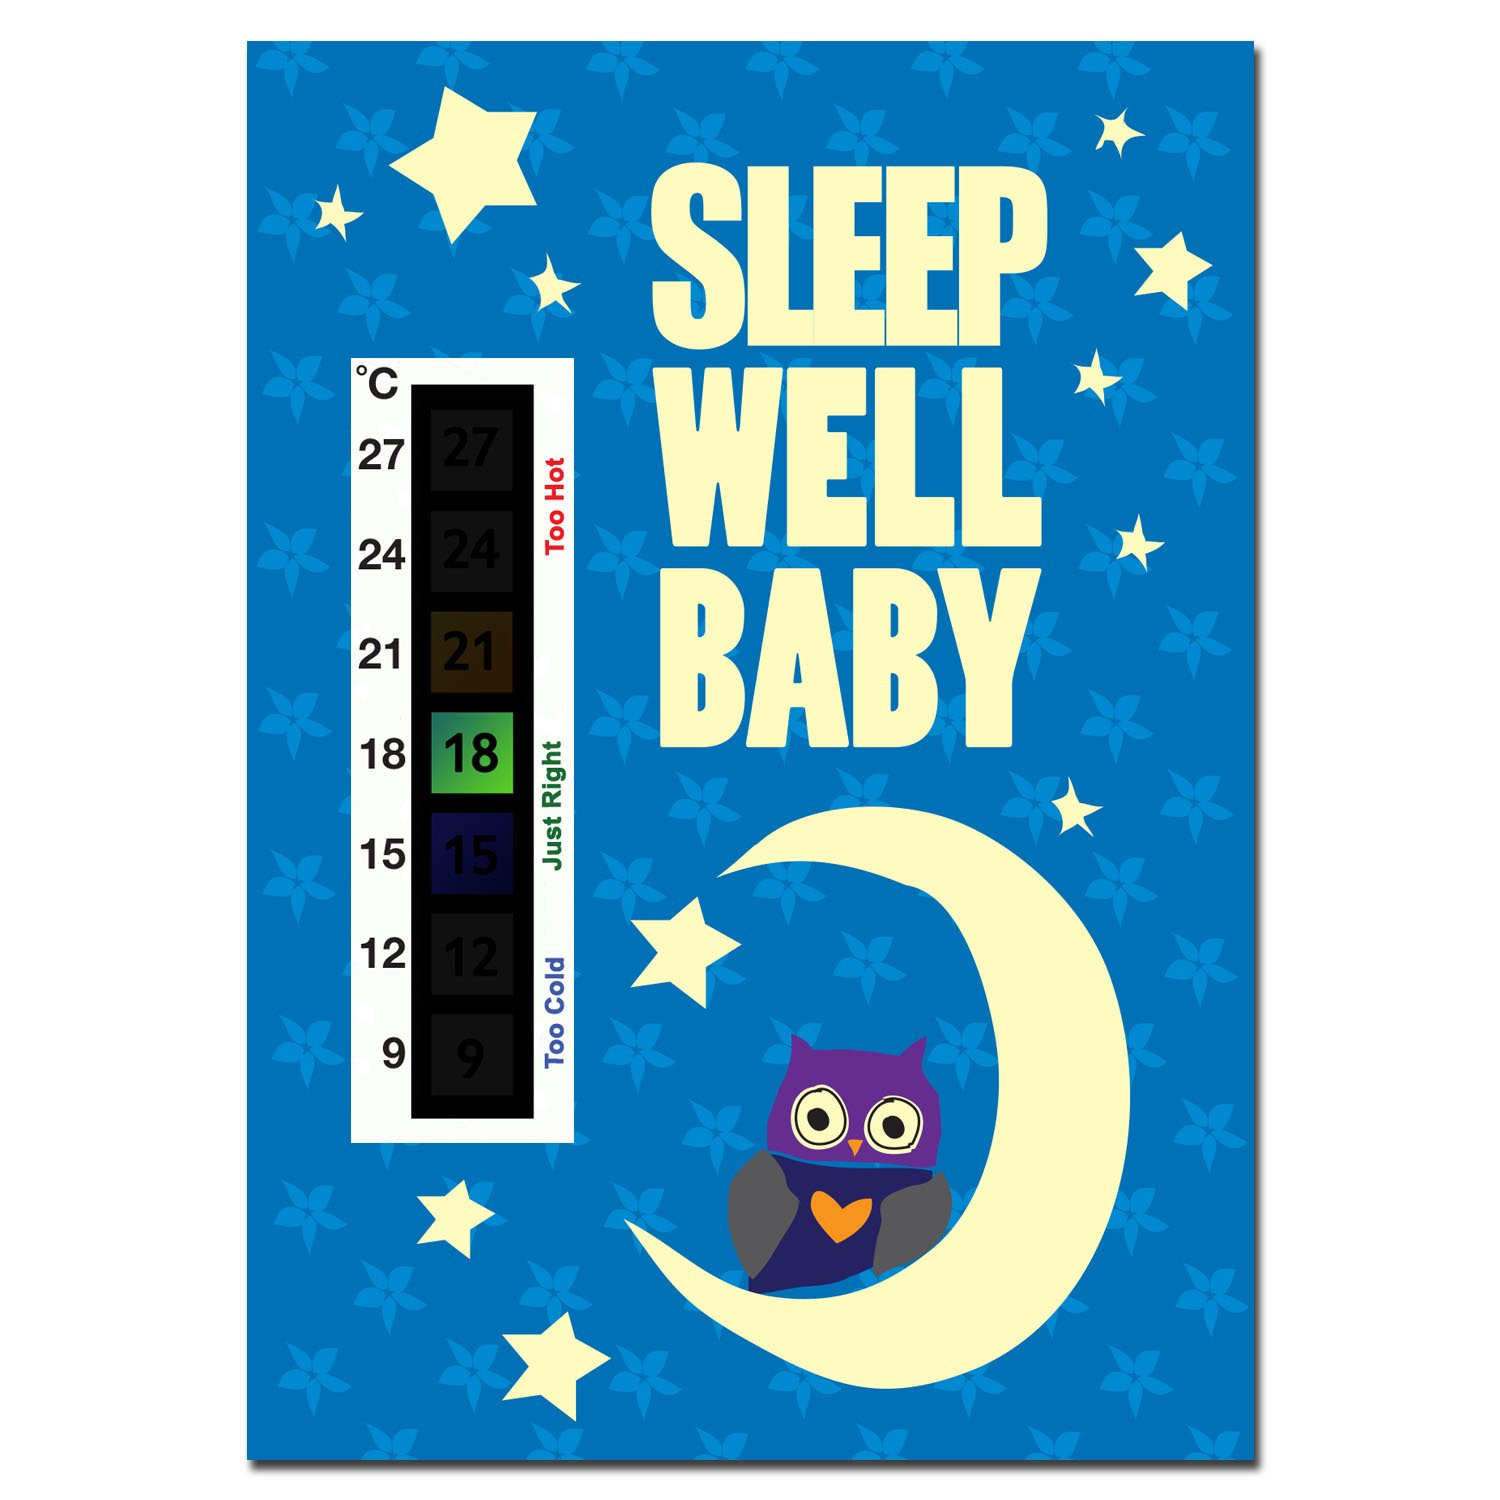 Sleep Well Baby Baby Owl, Moon & Stars Nursery Room Safety Temperature Thermometer Monitor Good Life Innovations